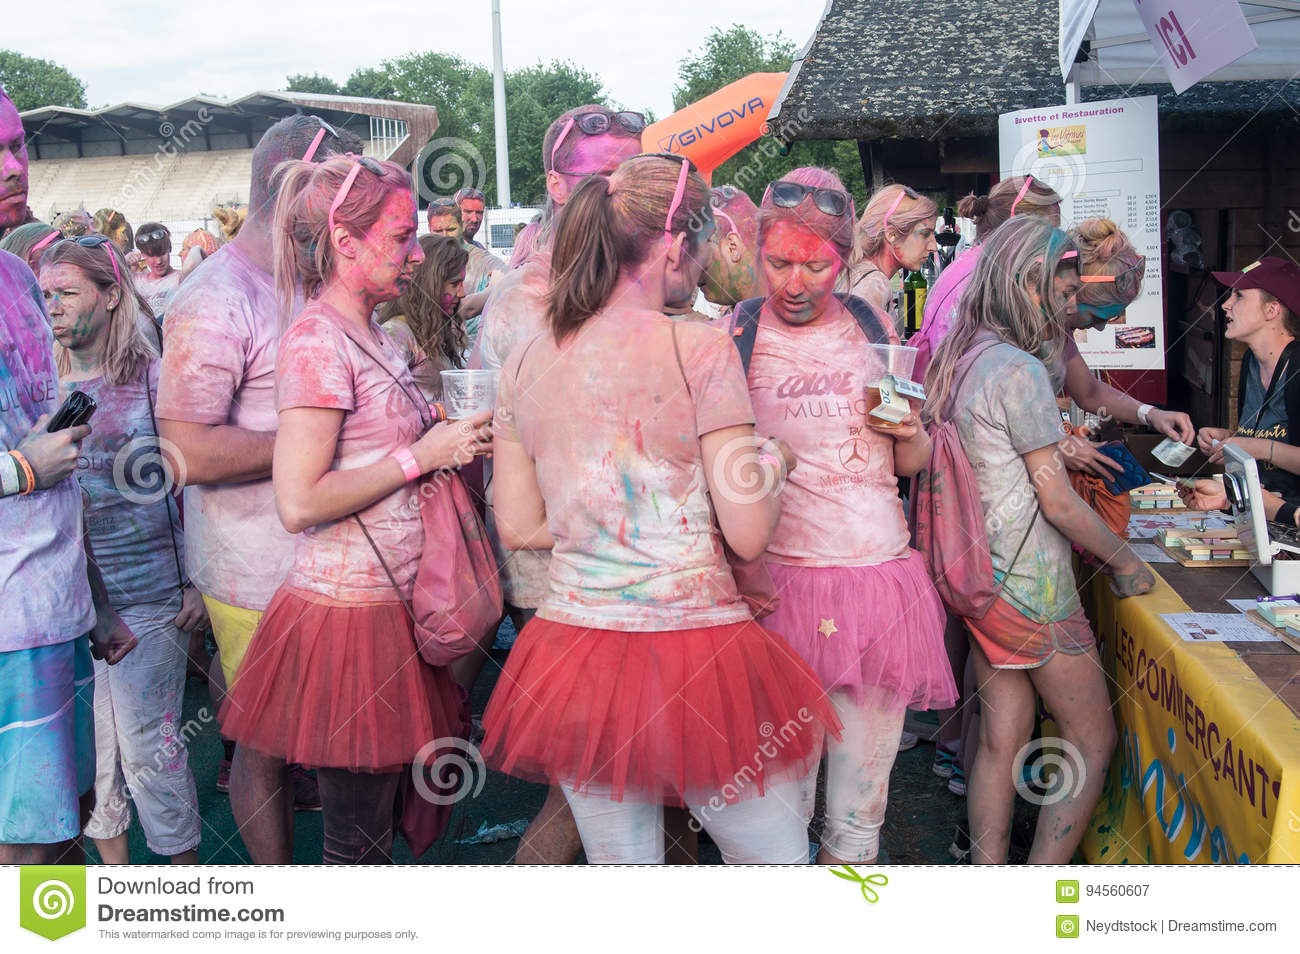 People at waiting for drinking Colore Mulhouse 2017